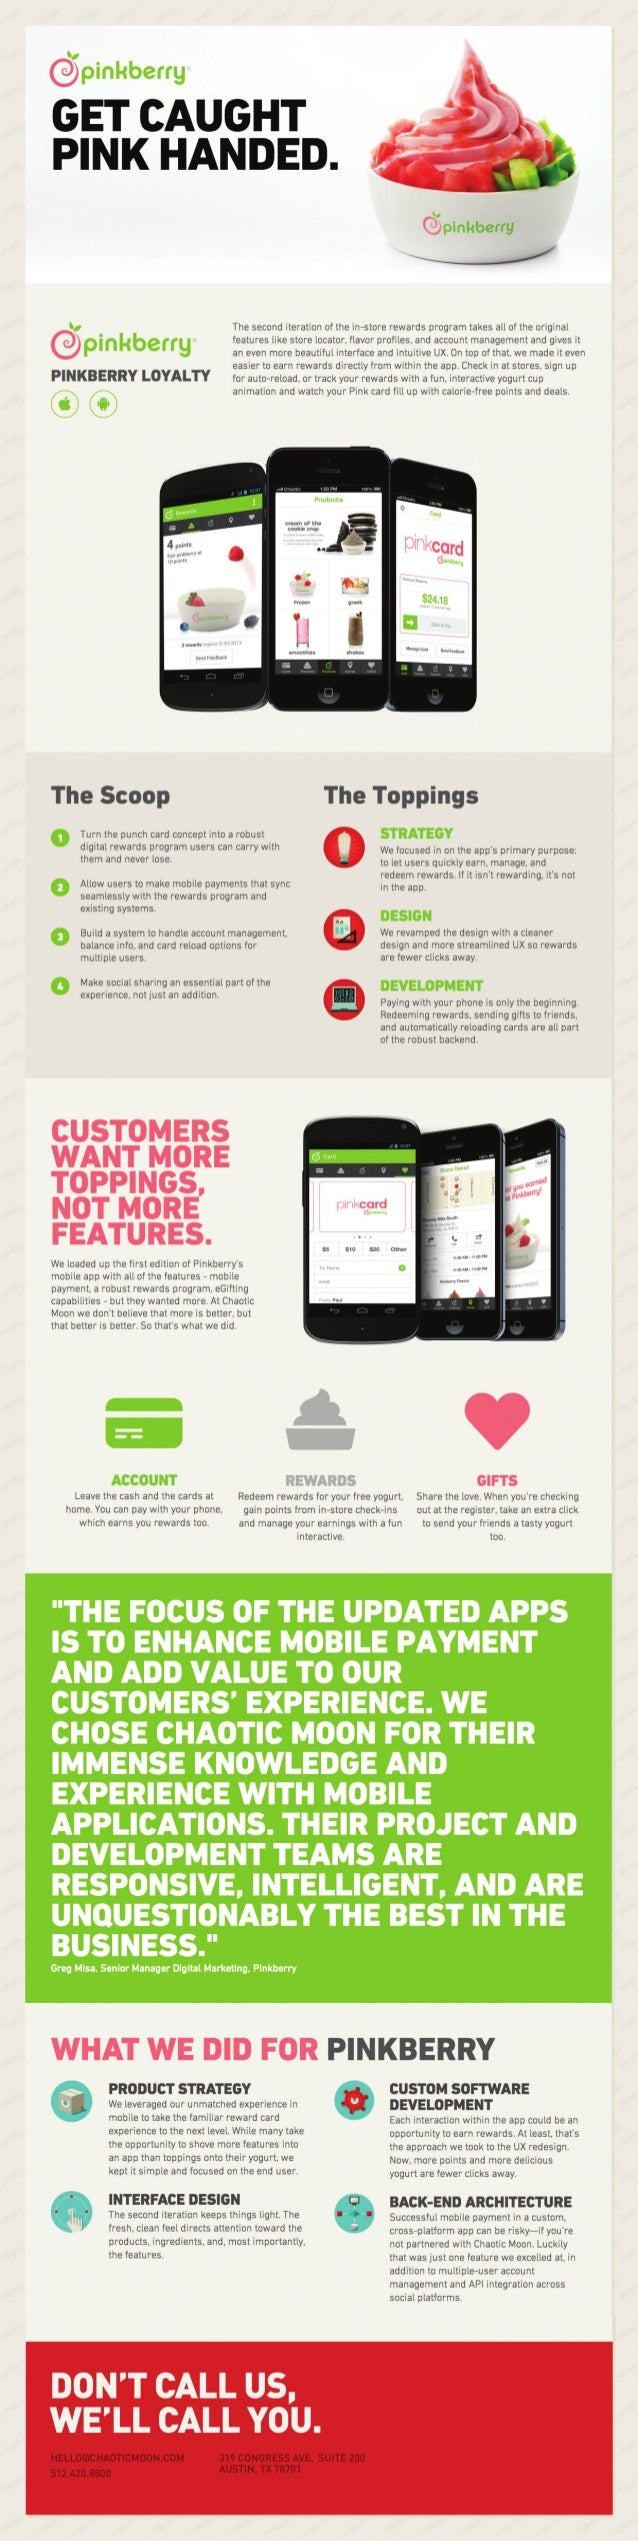 Mobile Loyalty: Pinkberry's Sweet Rewards